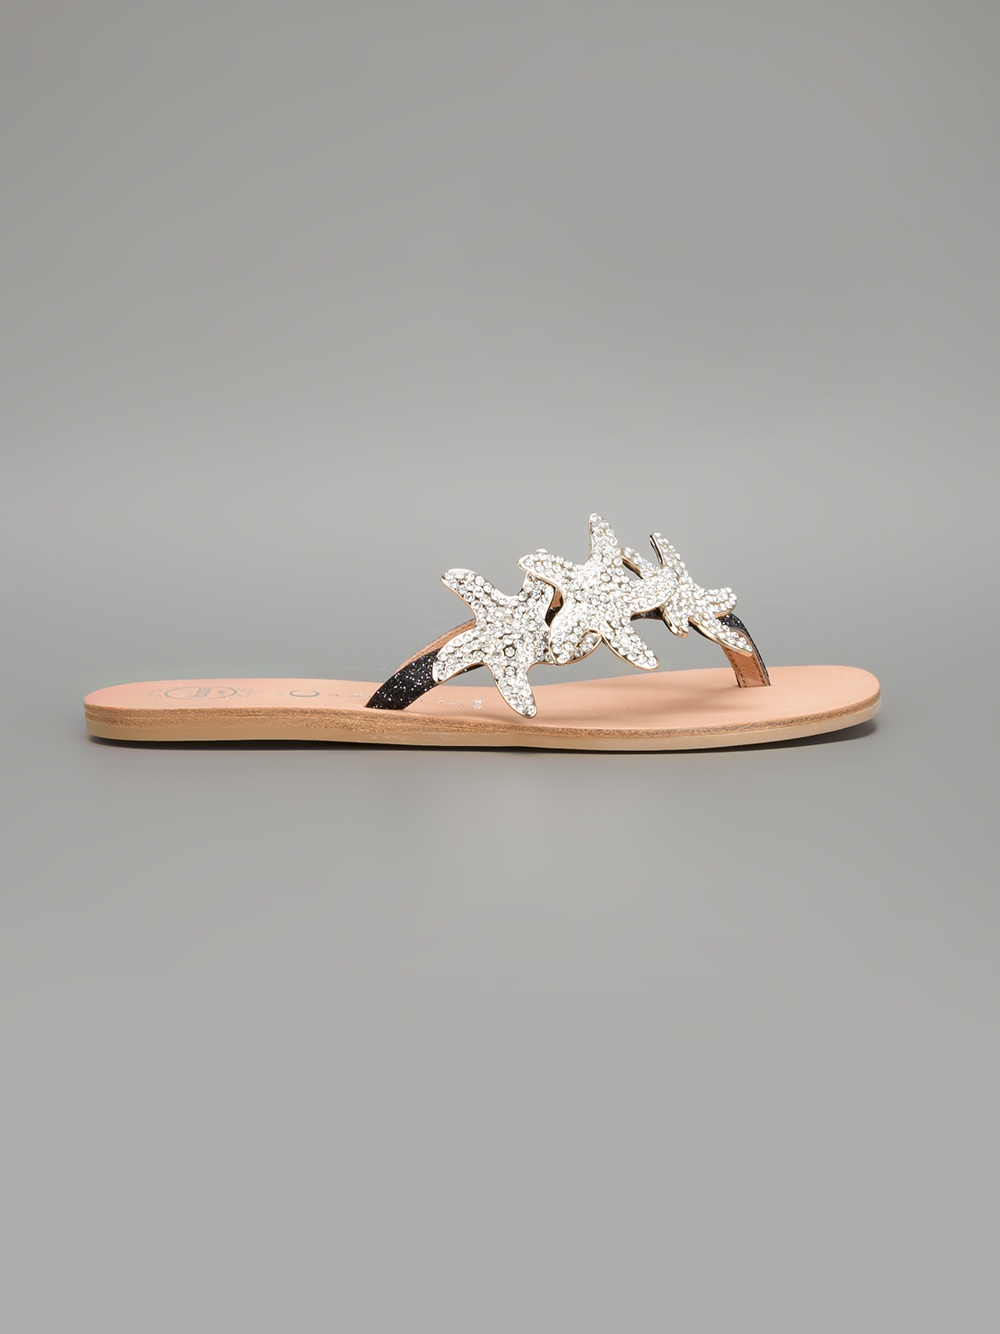 48c26e7e59646 Lyst - Jeffrey Campbell Starfish Flat Sandals in Metallic